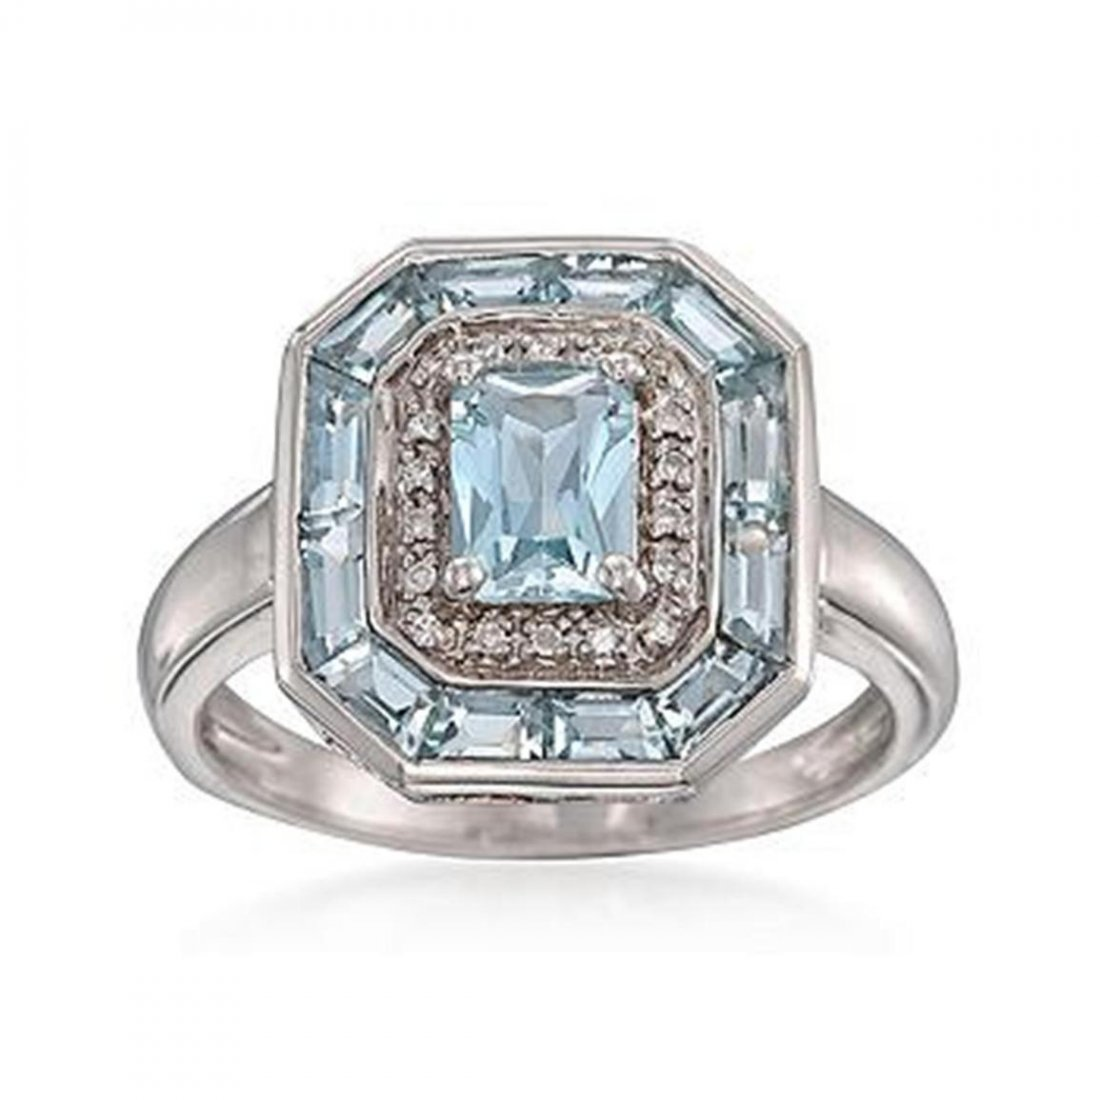 1.50 ct. t.w. Aquamarine Dinner Ring With Diamonds in